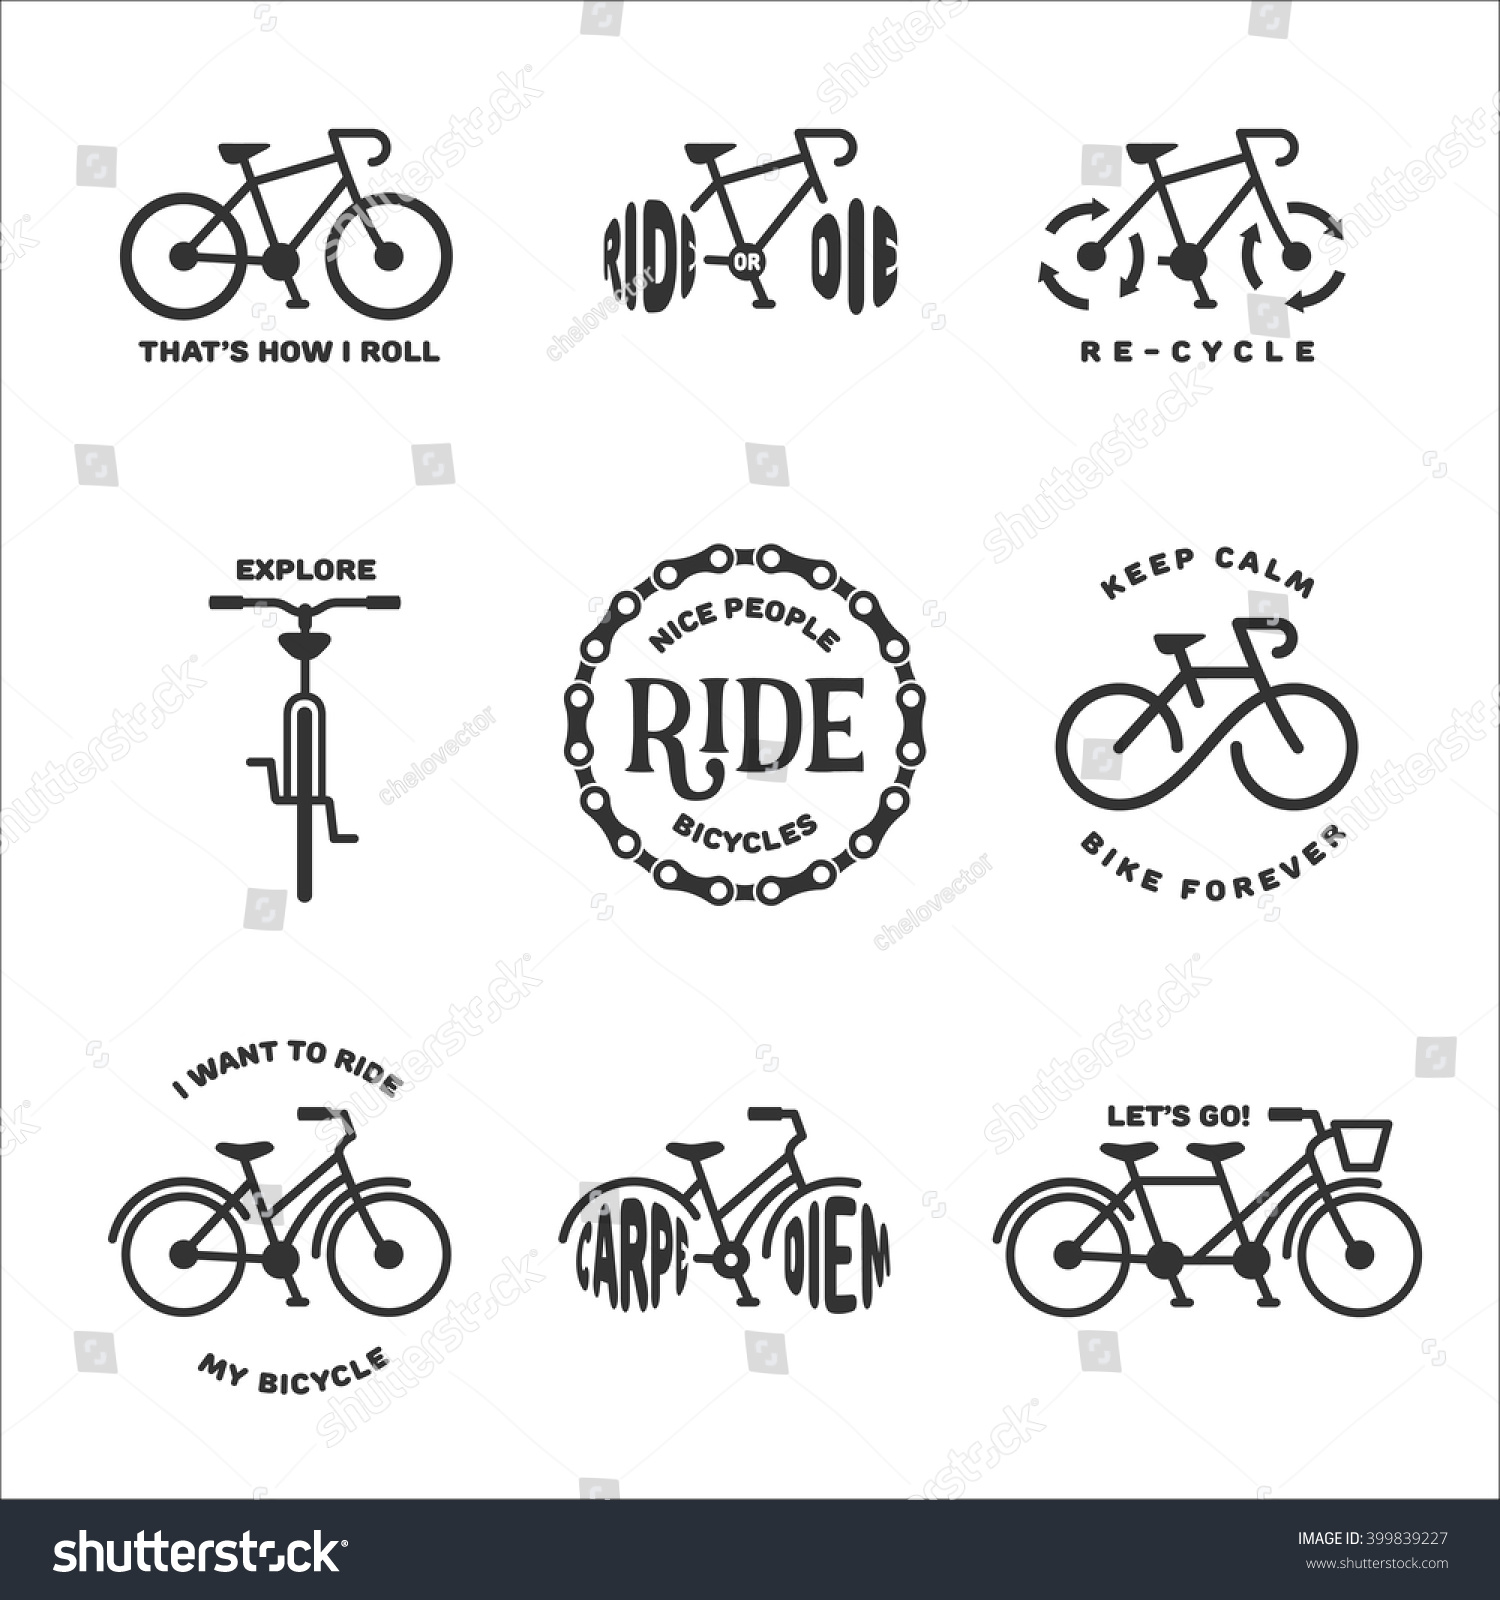 Cycling Quotes   Bicycle Related Typography Set Motivational Quotes Stock